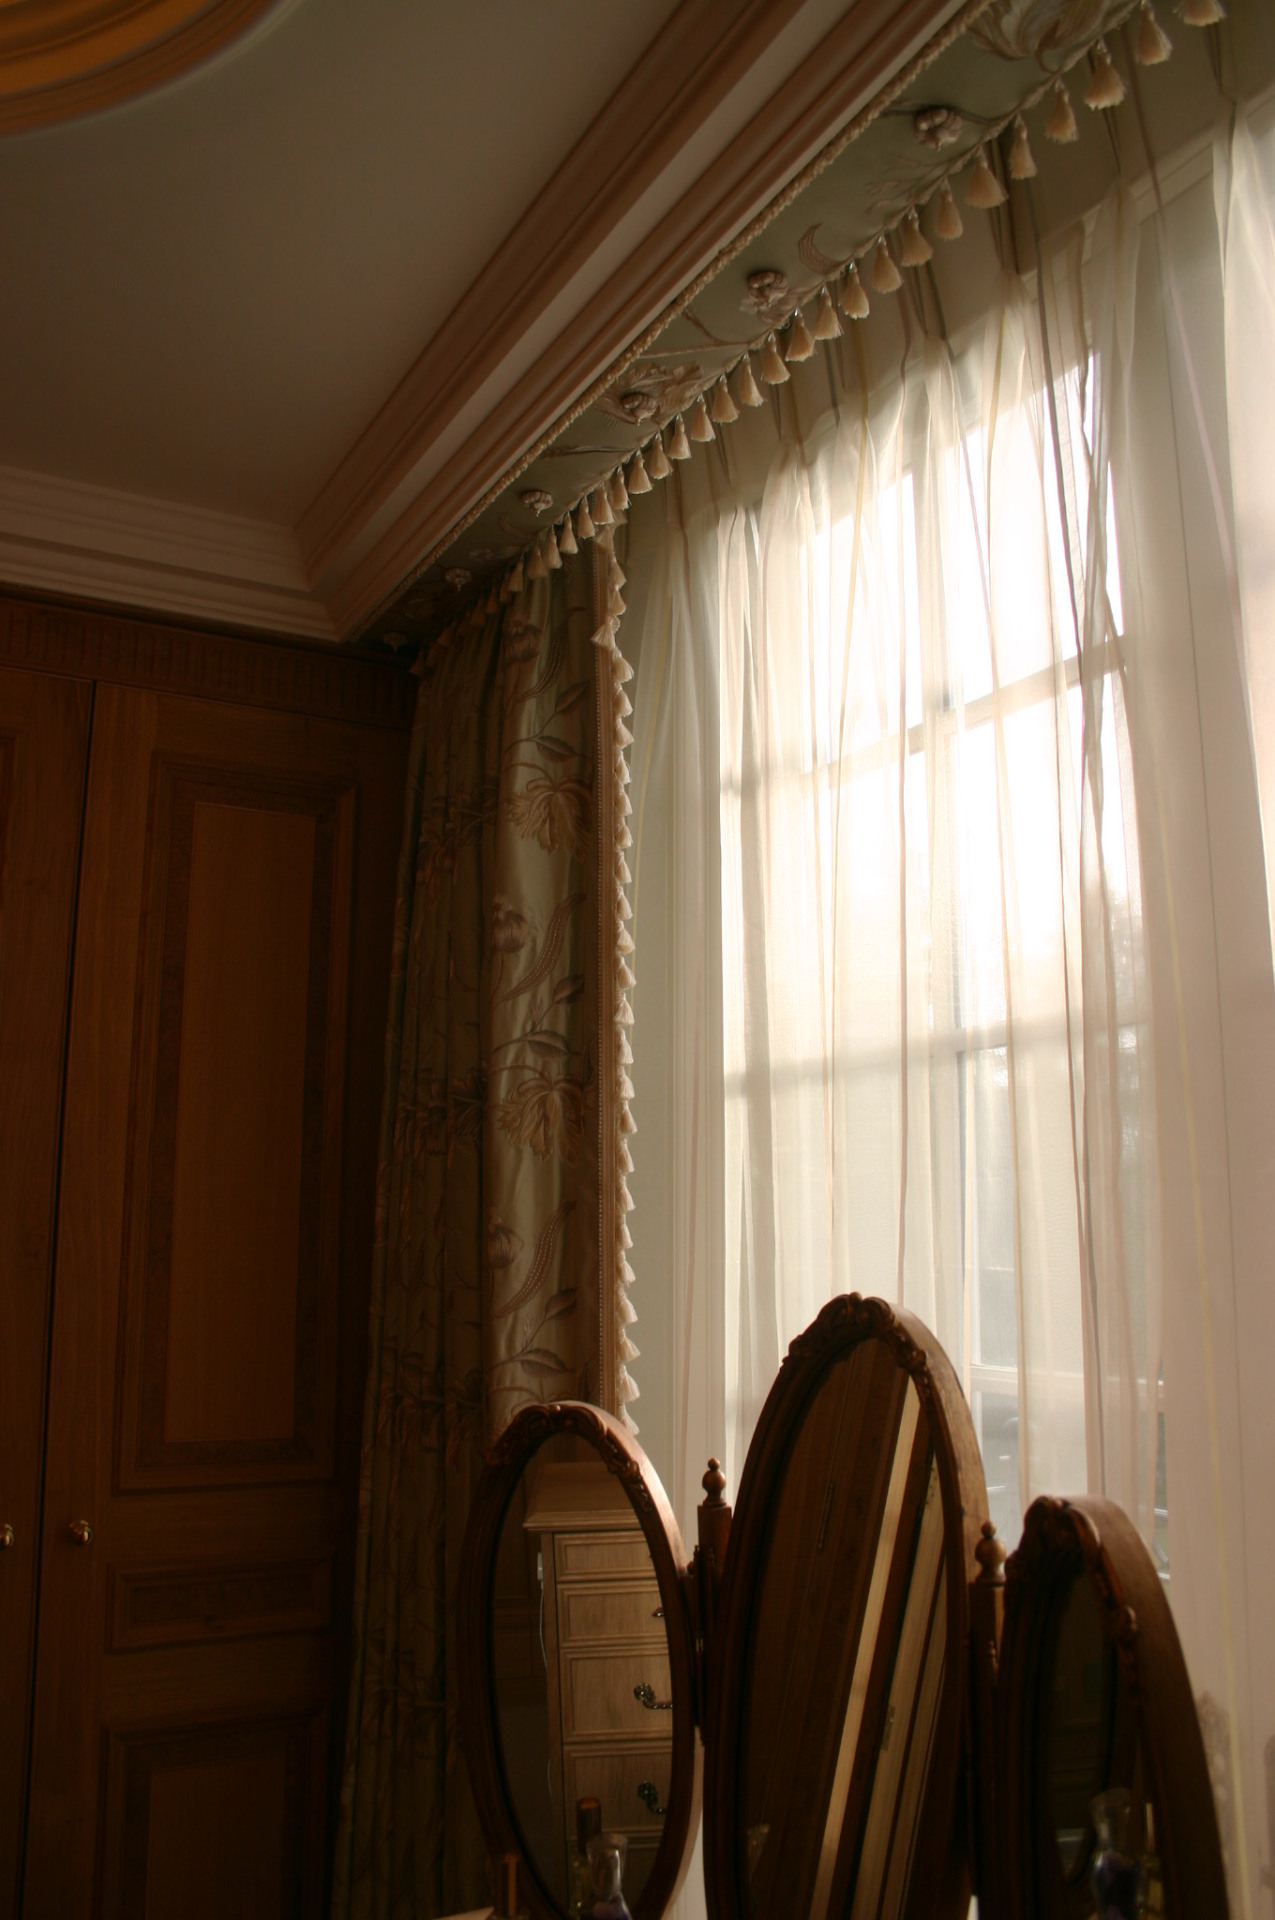 Window treatment solutions